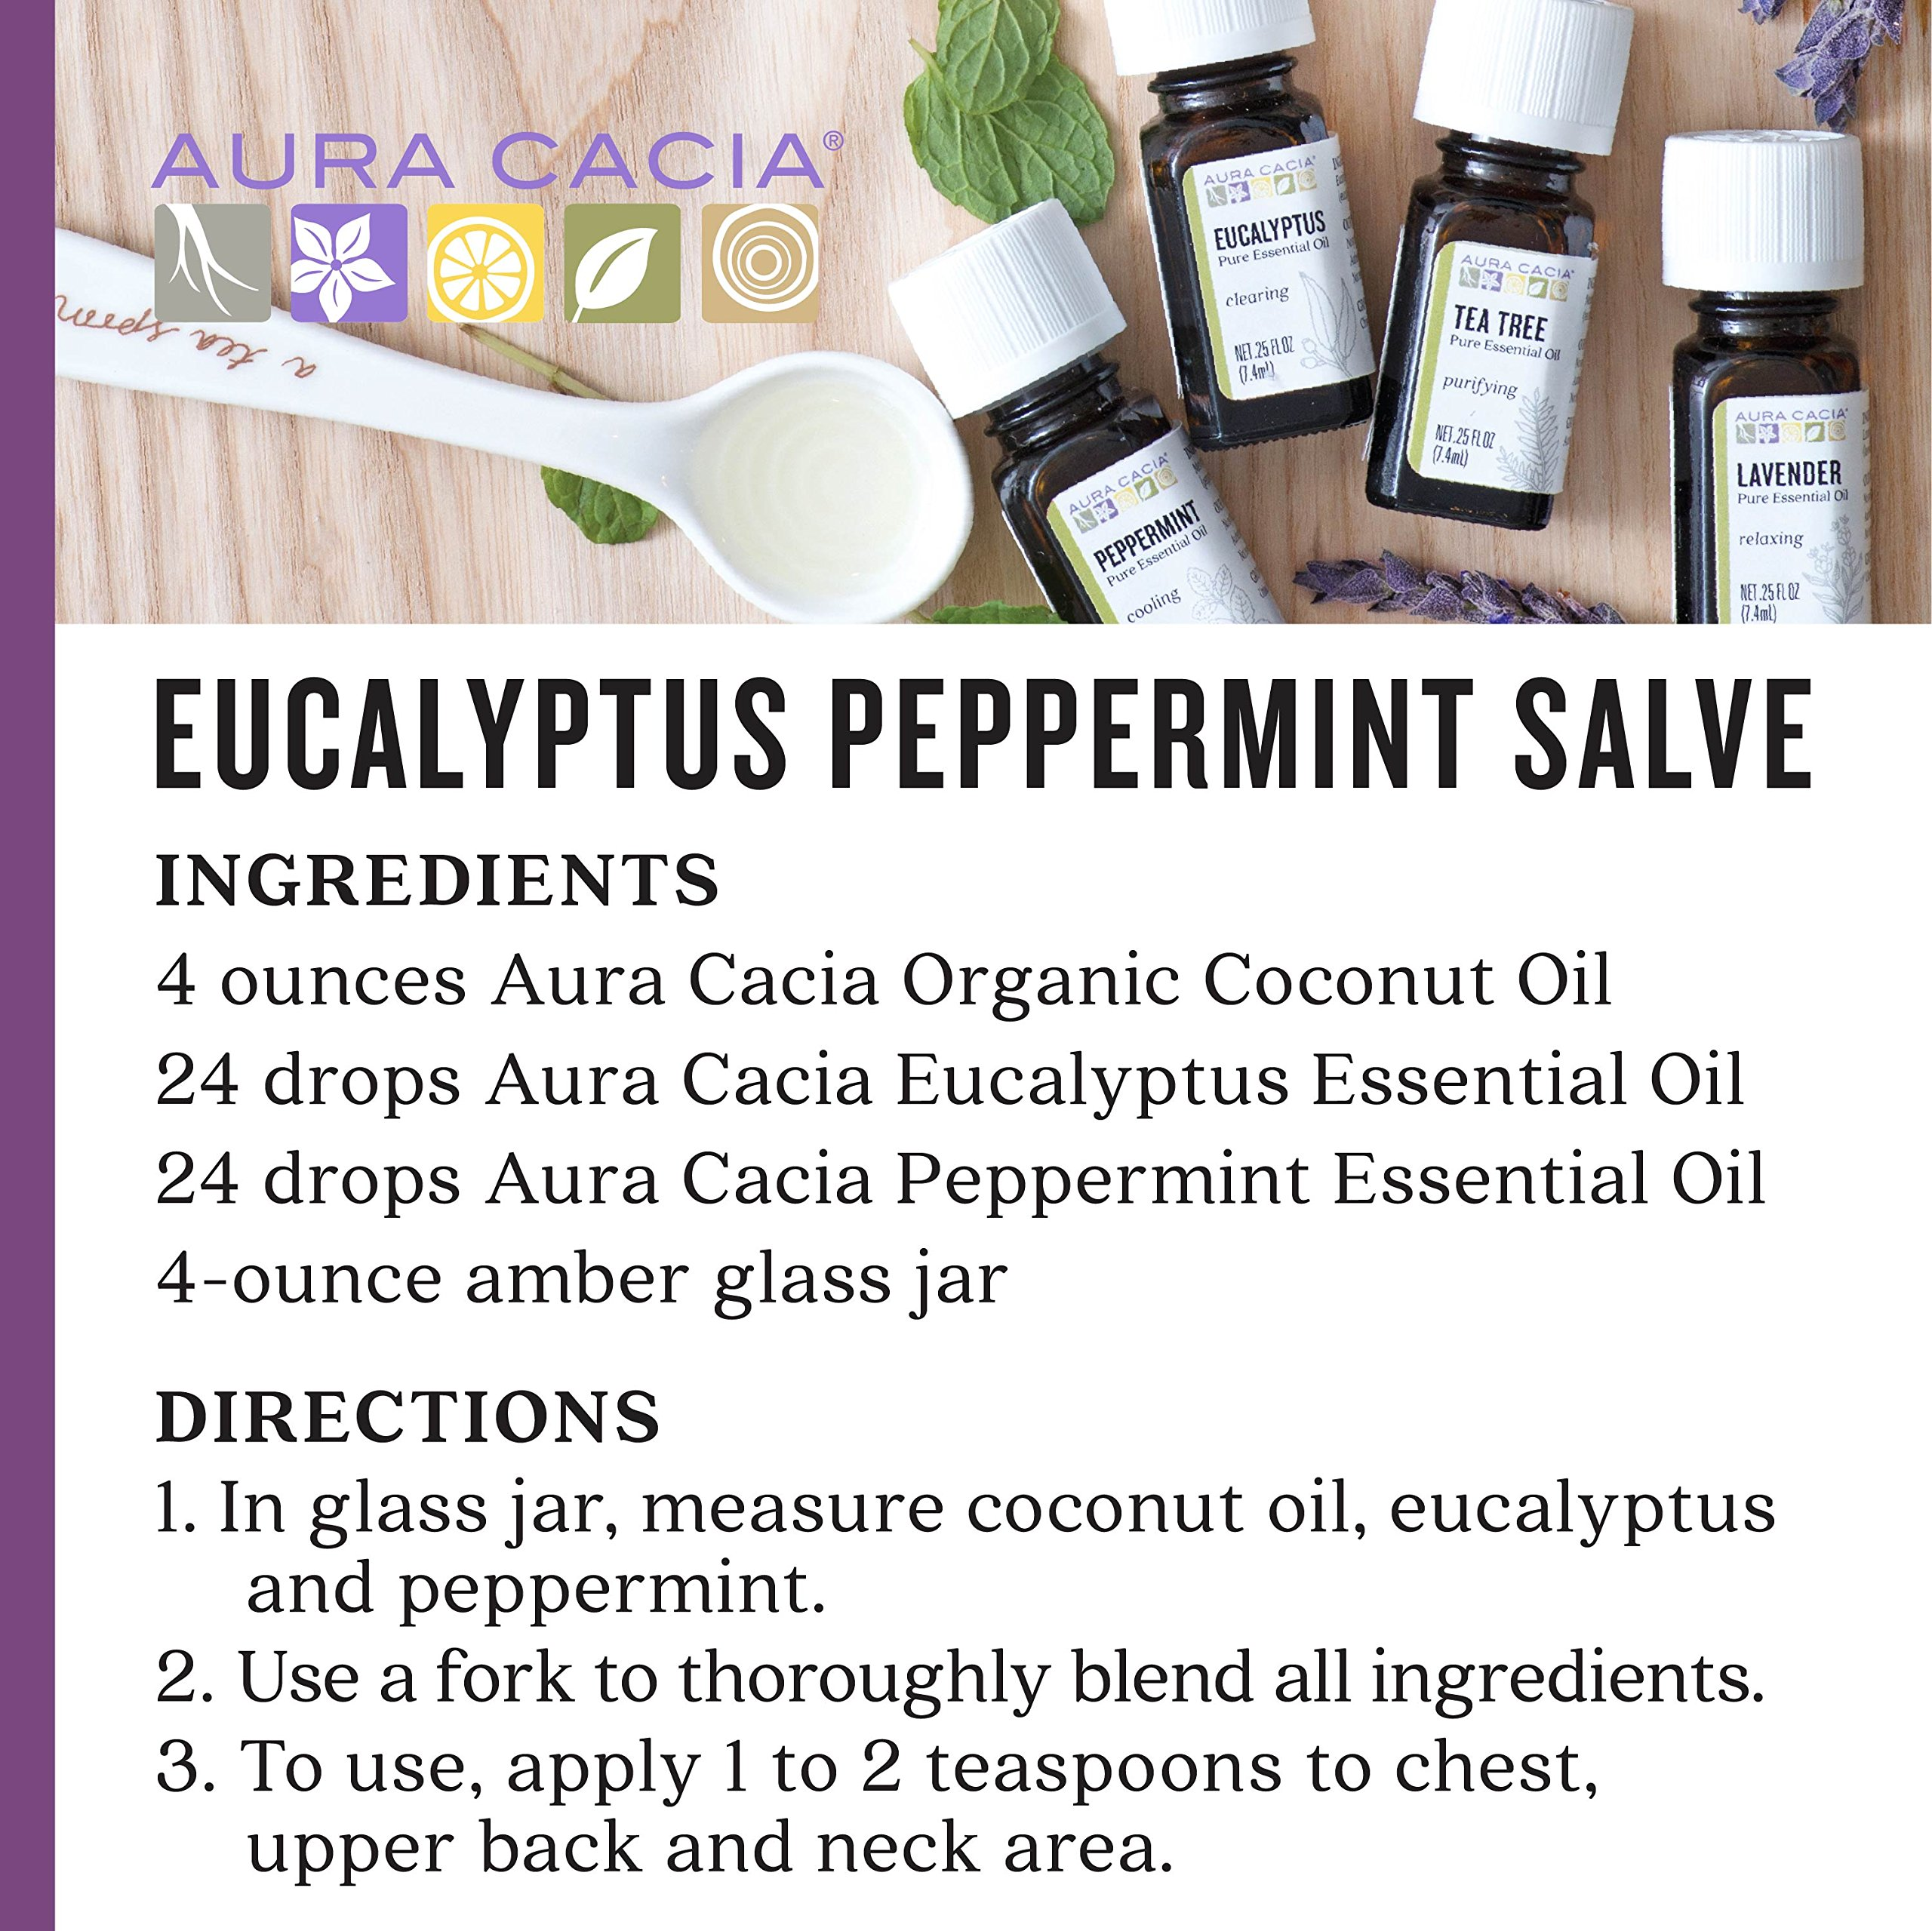 Aura Cacia - Discover Essential Oils Kit (Packaging May Vary) | .25oz each of Lavender, Peppermint, Tea Tree and Eucalyptus by Aura Cacia (Image #5)